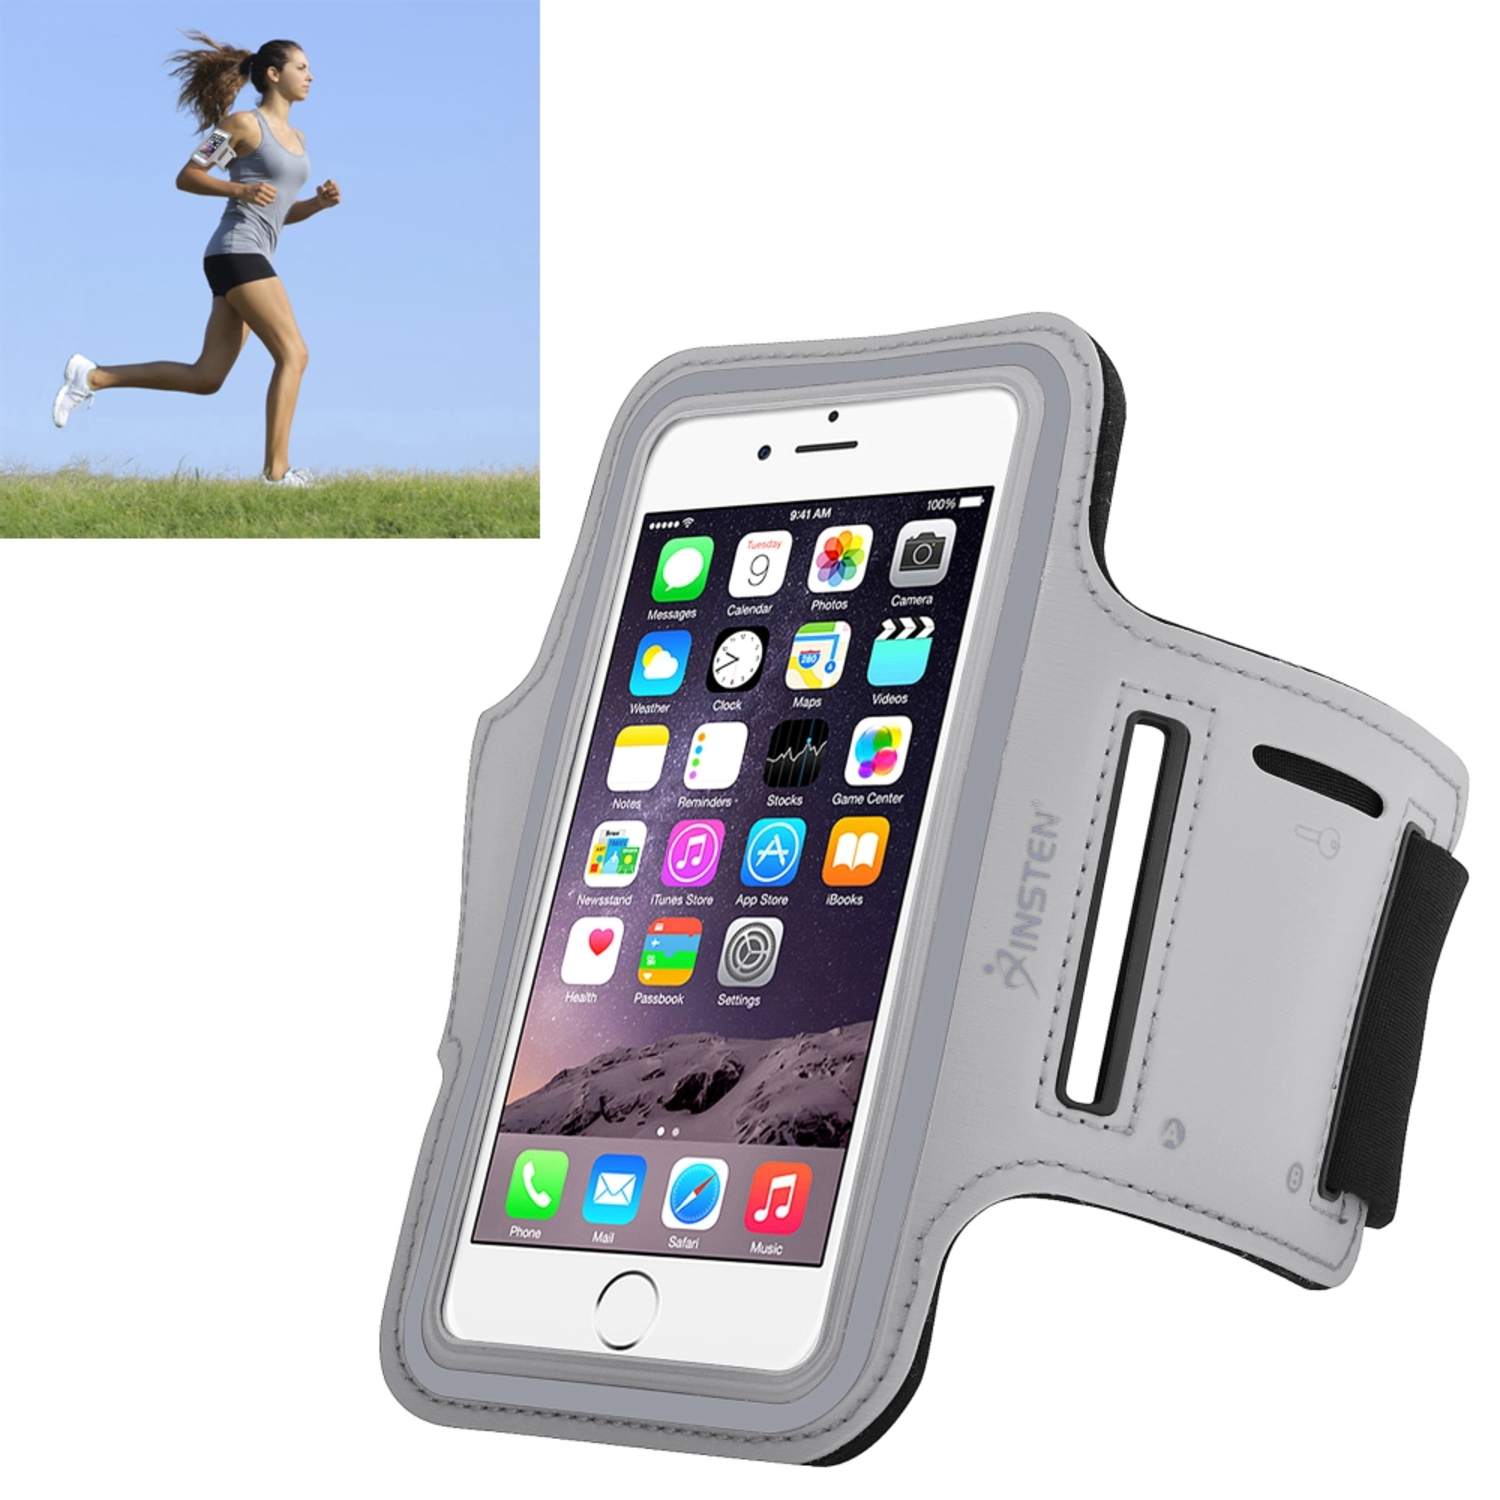 Insten Sports Armband Running Jogging Gym Exercise Case Phone Holder for iPhone 6 6S / Galaxy S7 S6 S6 Edge (with key storage slot) Silver